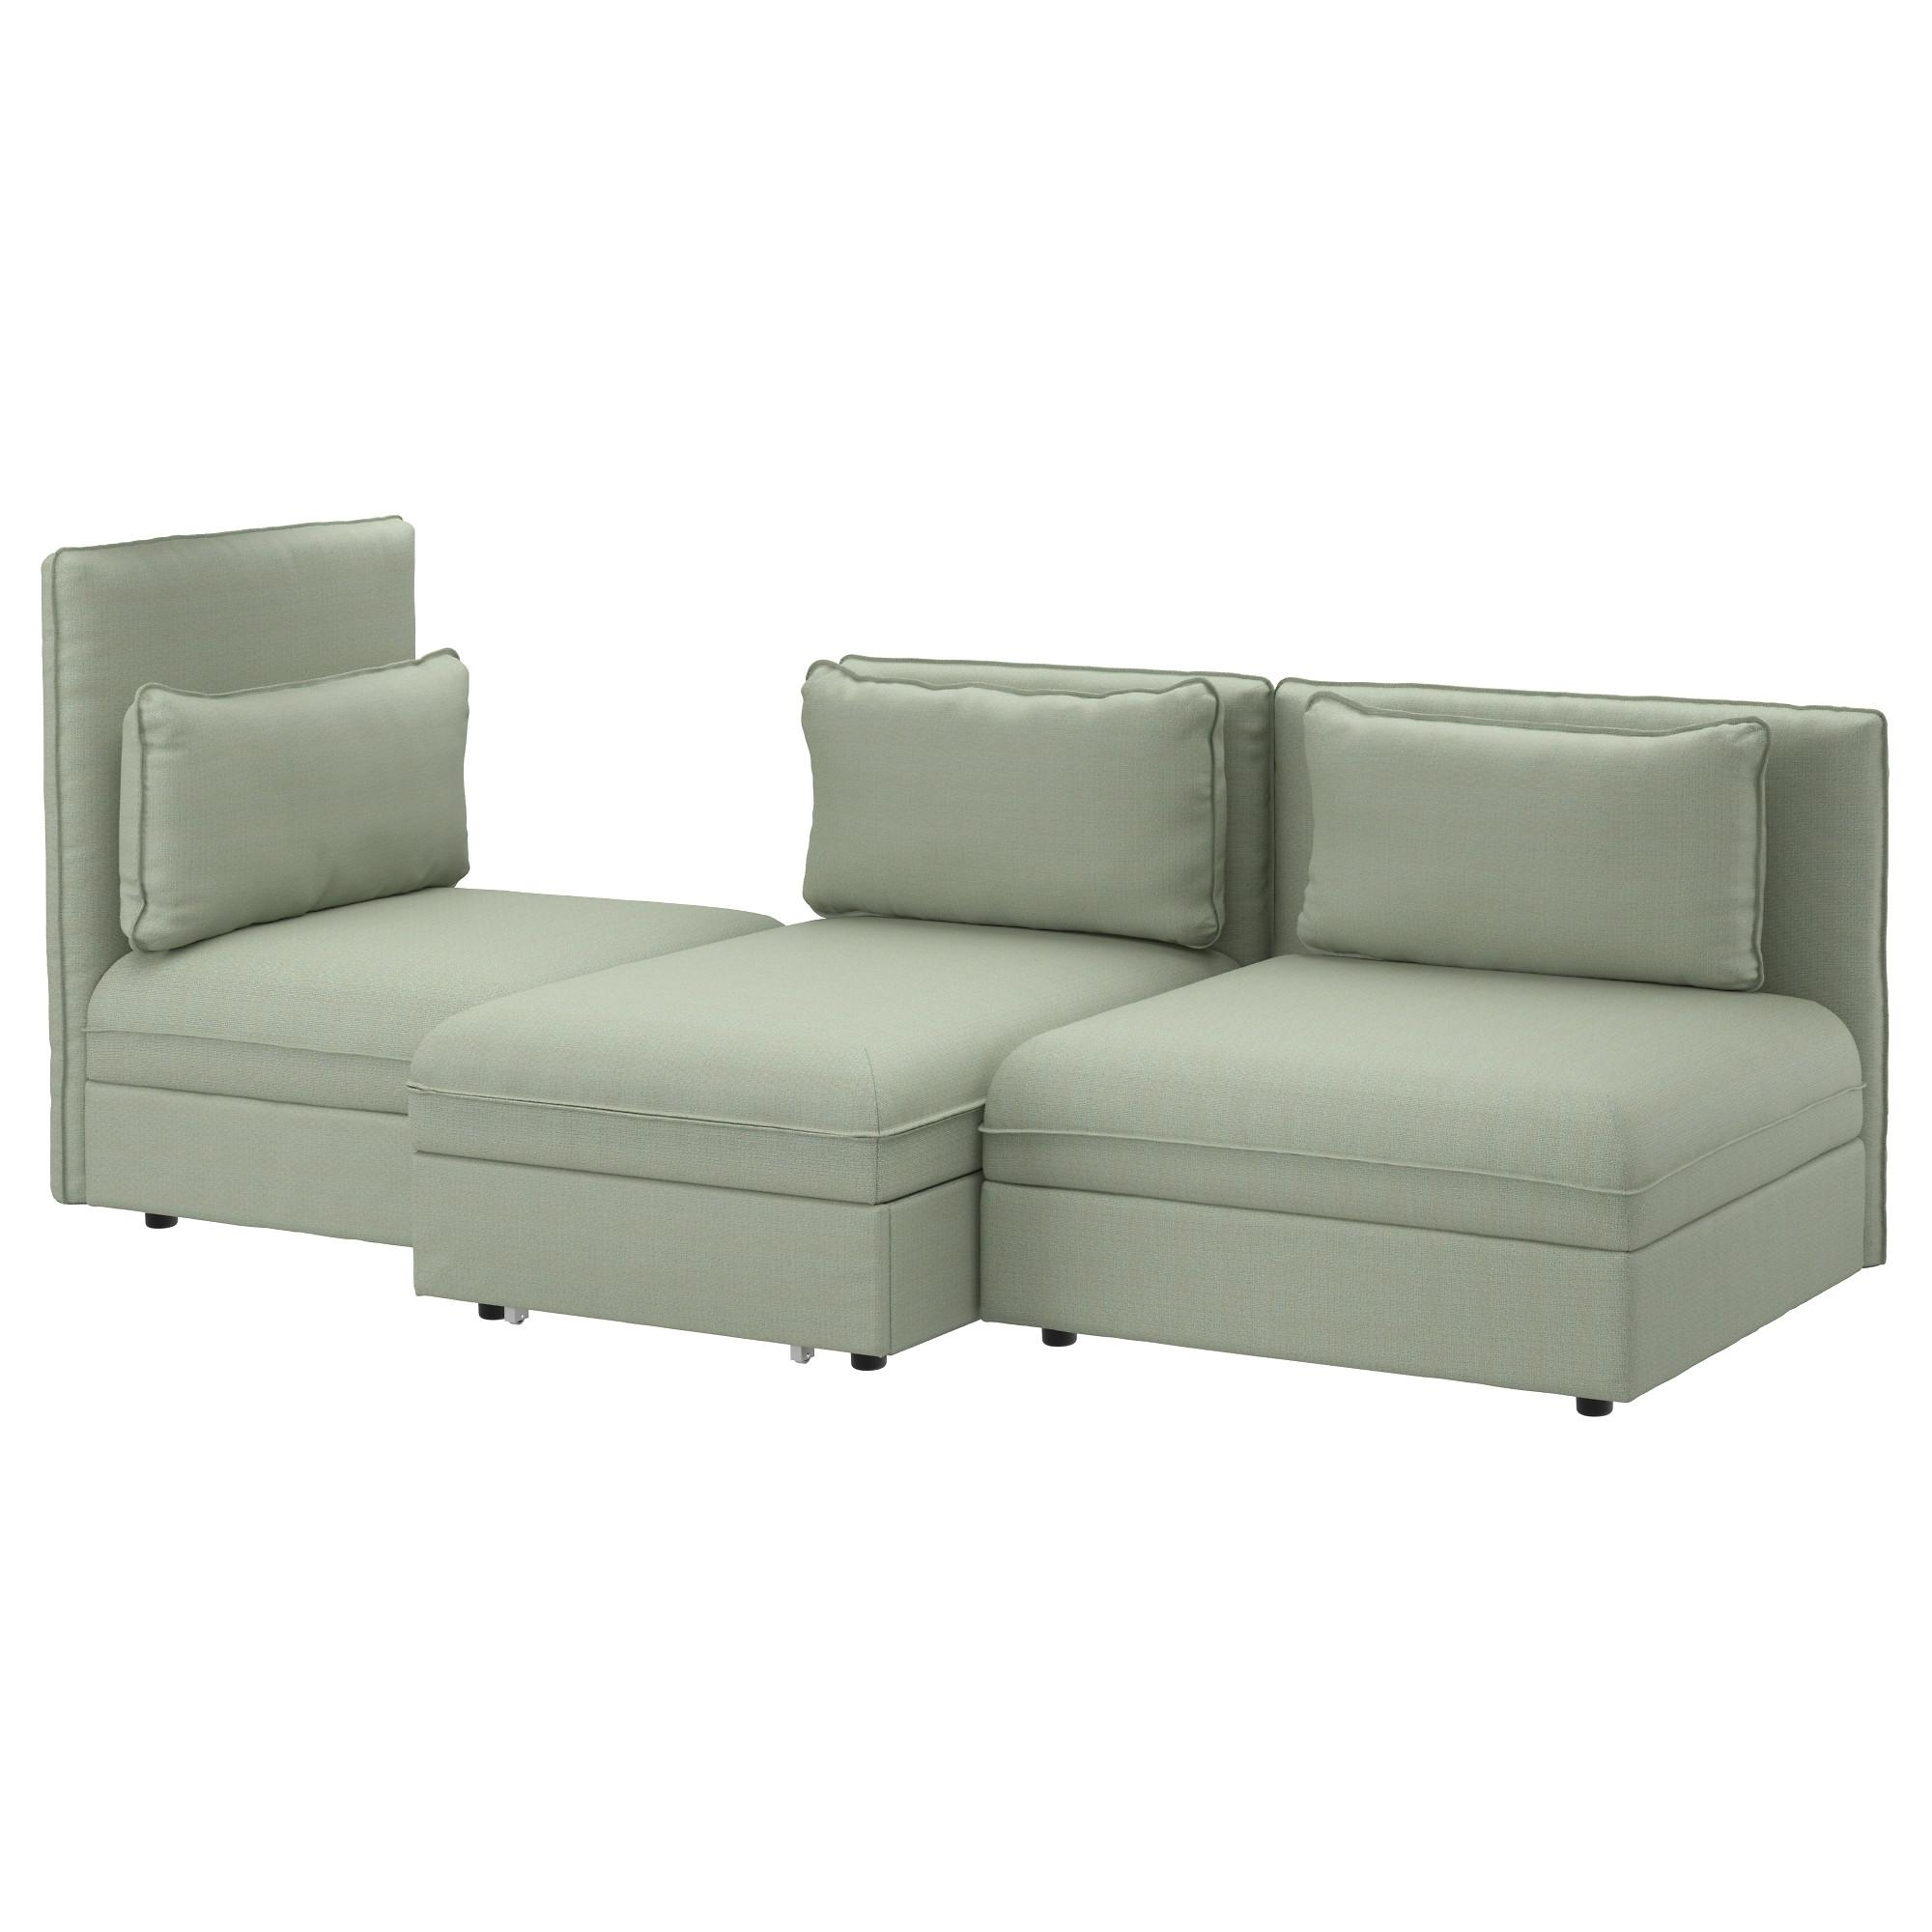 Sofa Beds & Futons – Ikea Intended For Ikea Sectional Sofa Bed (Image 19 of 20)